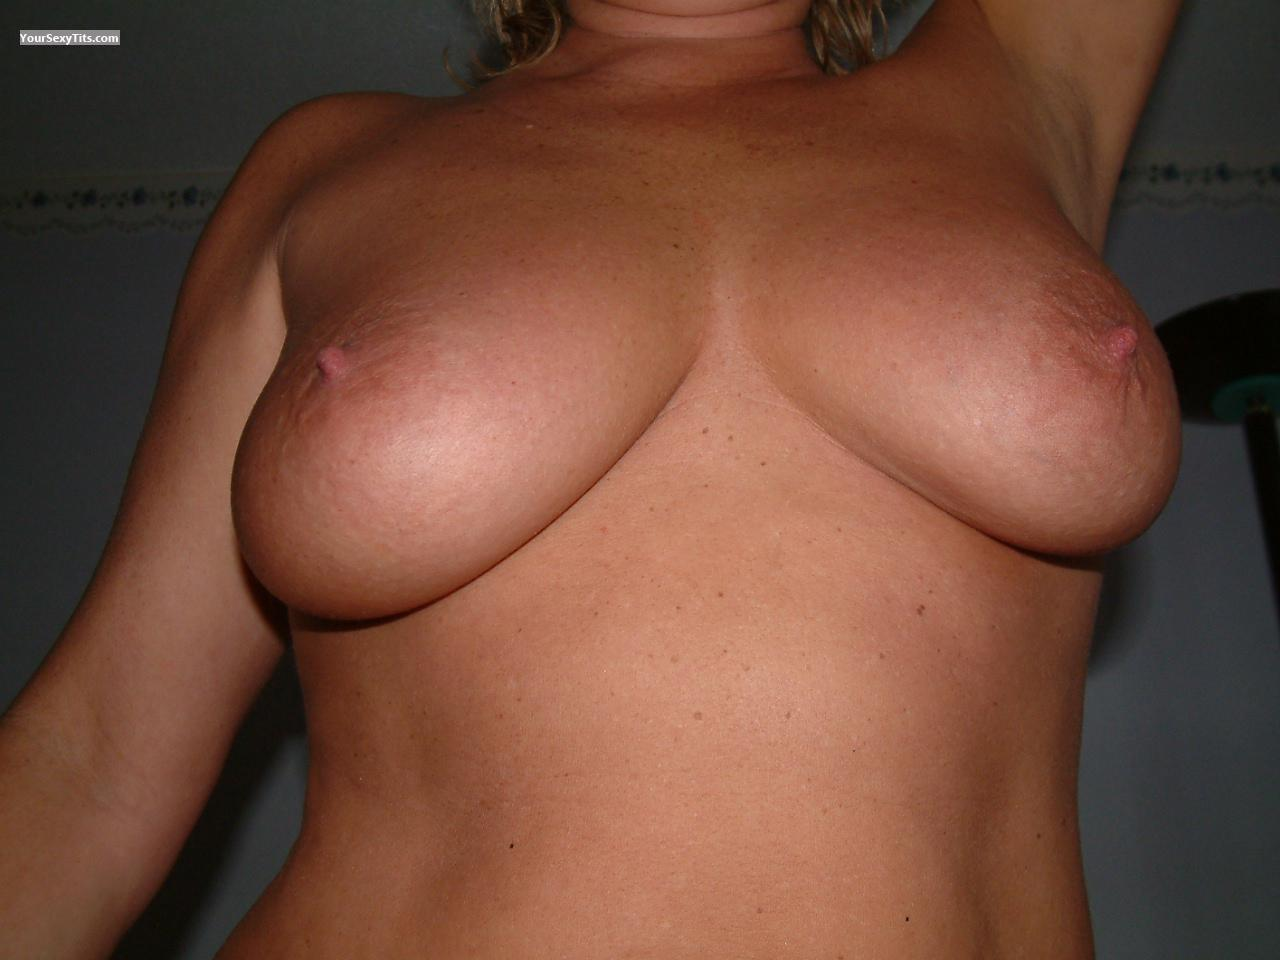 Big Tits Of My Wife Mrs Beachlady74